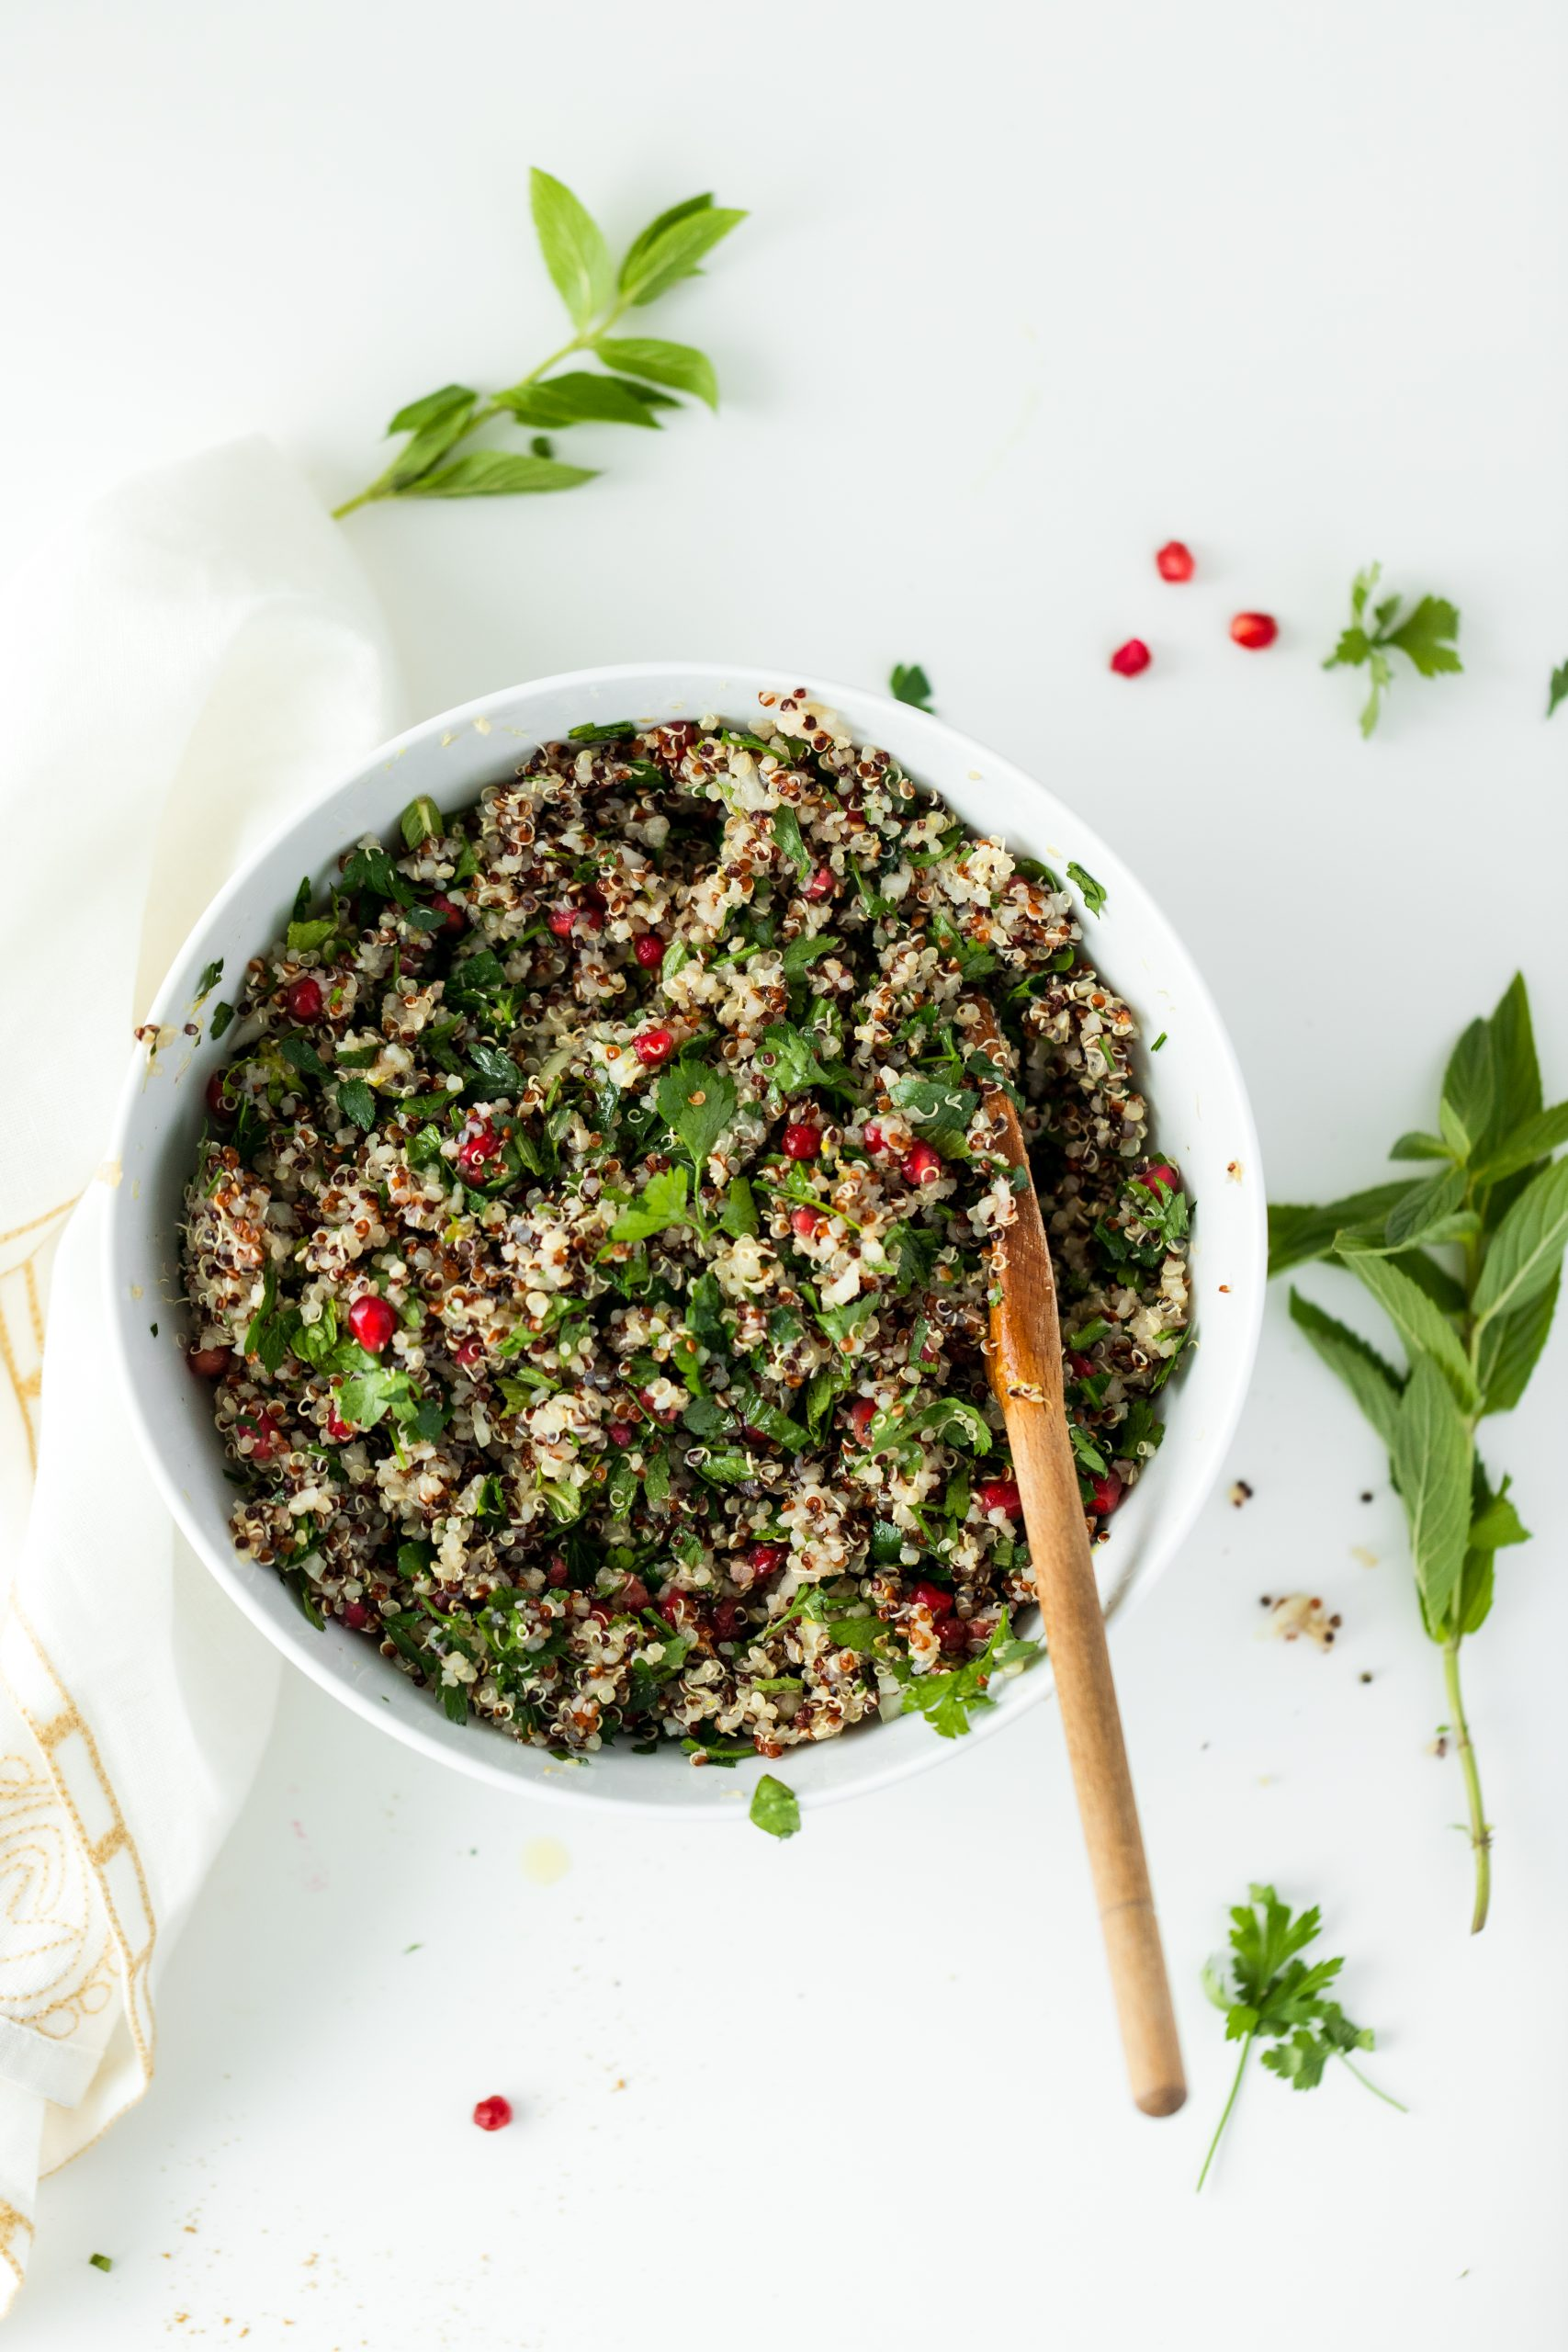 Quinoa Salad with Parsley and Pomegranate Seeds